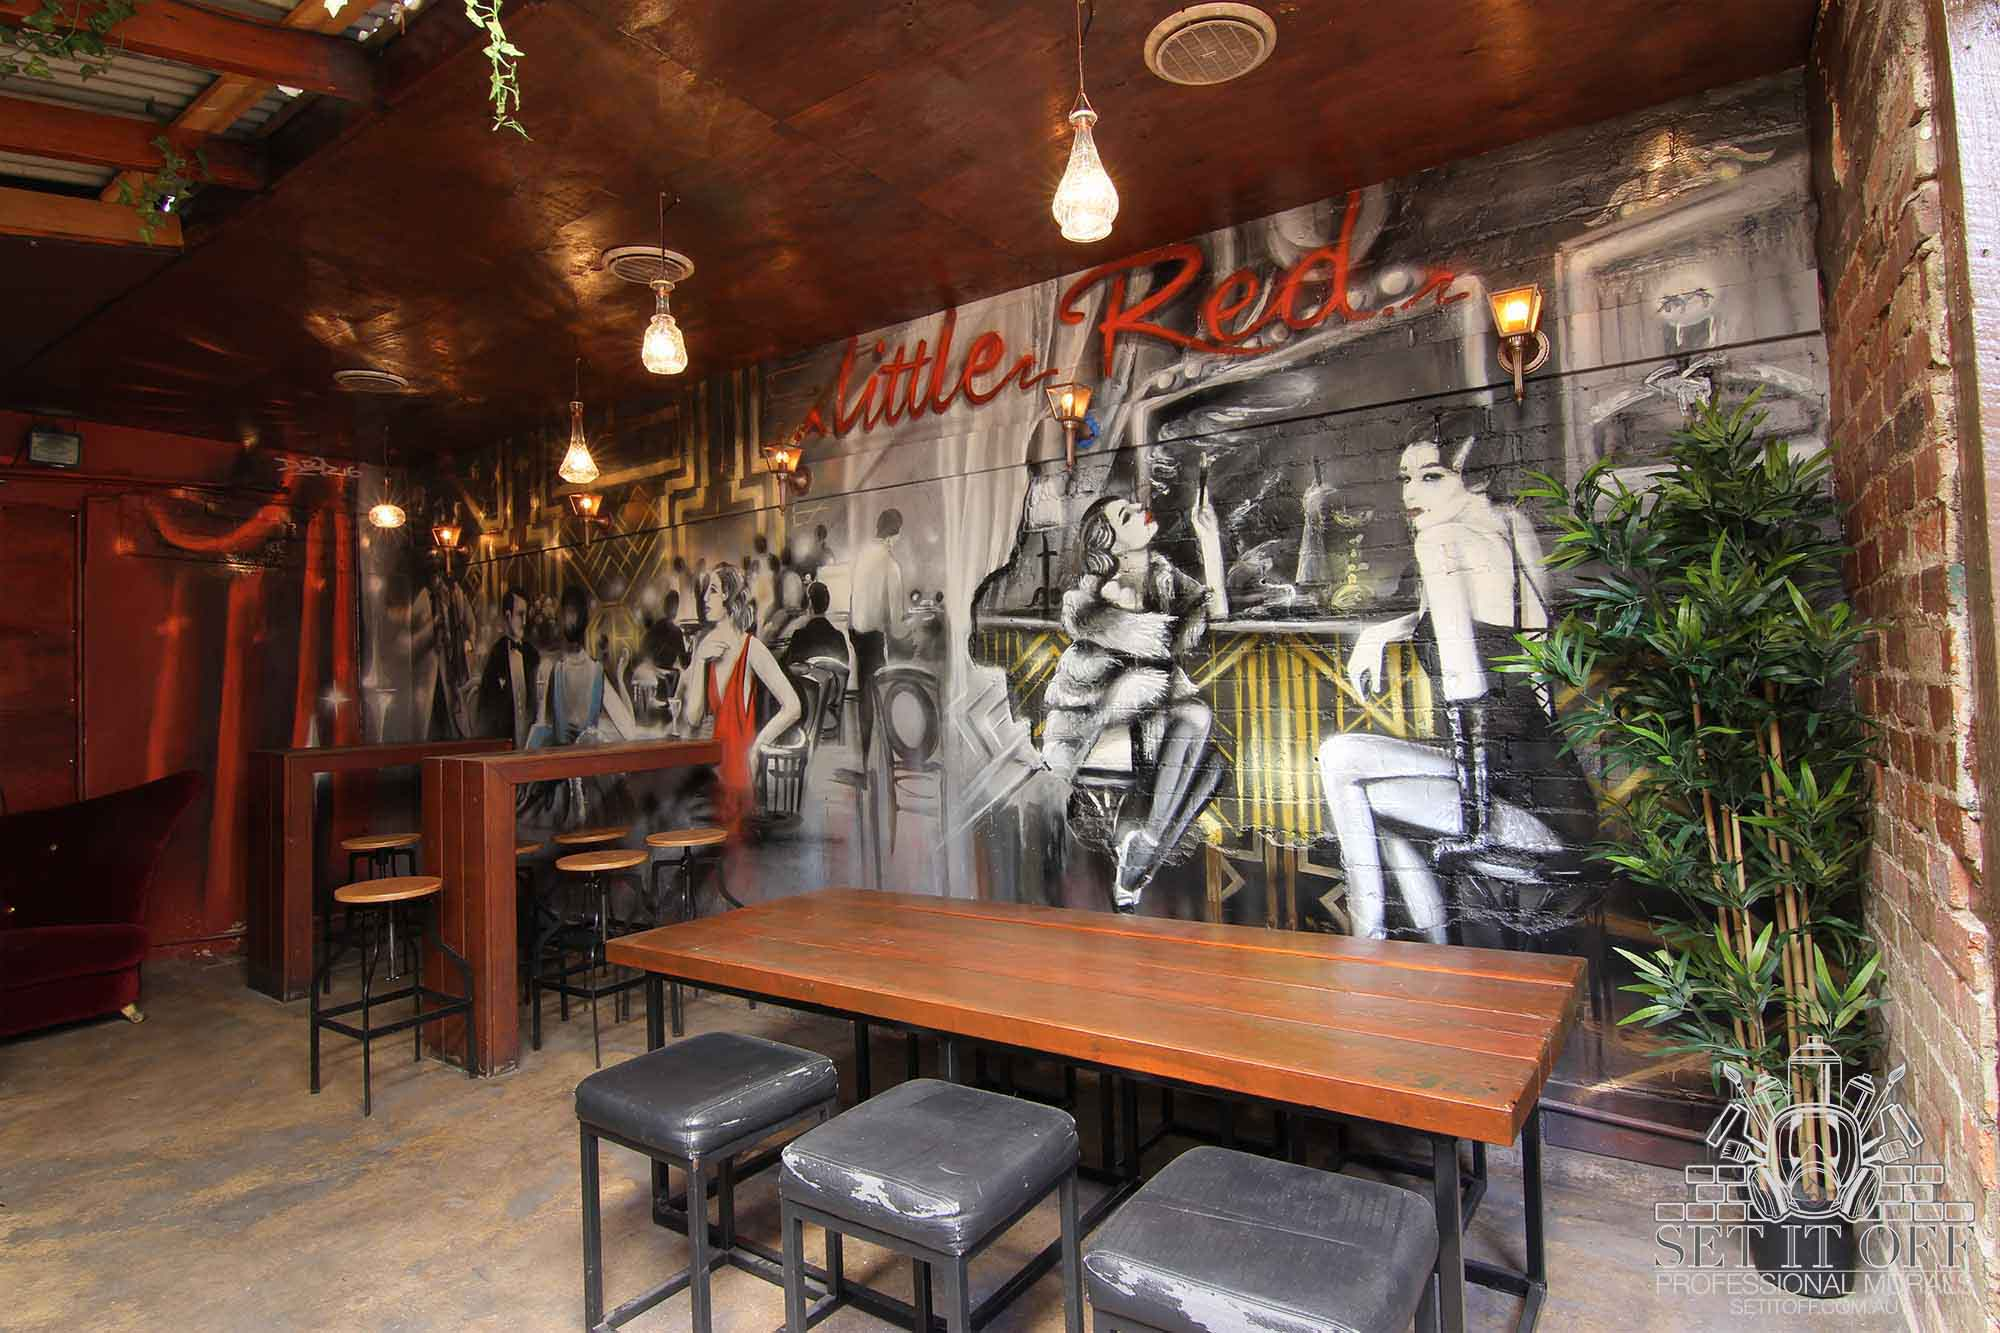 Speakeasy graffiti mural in art deco style